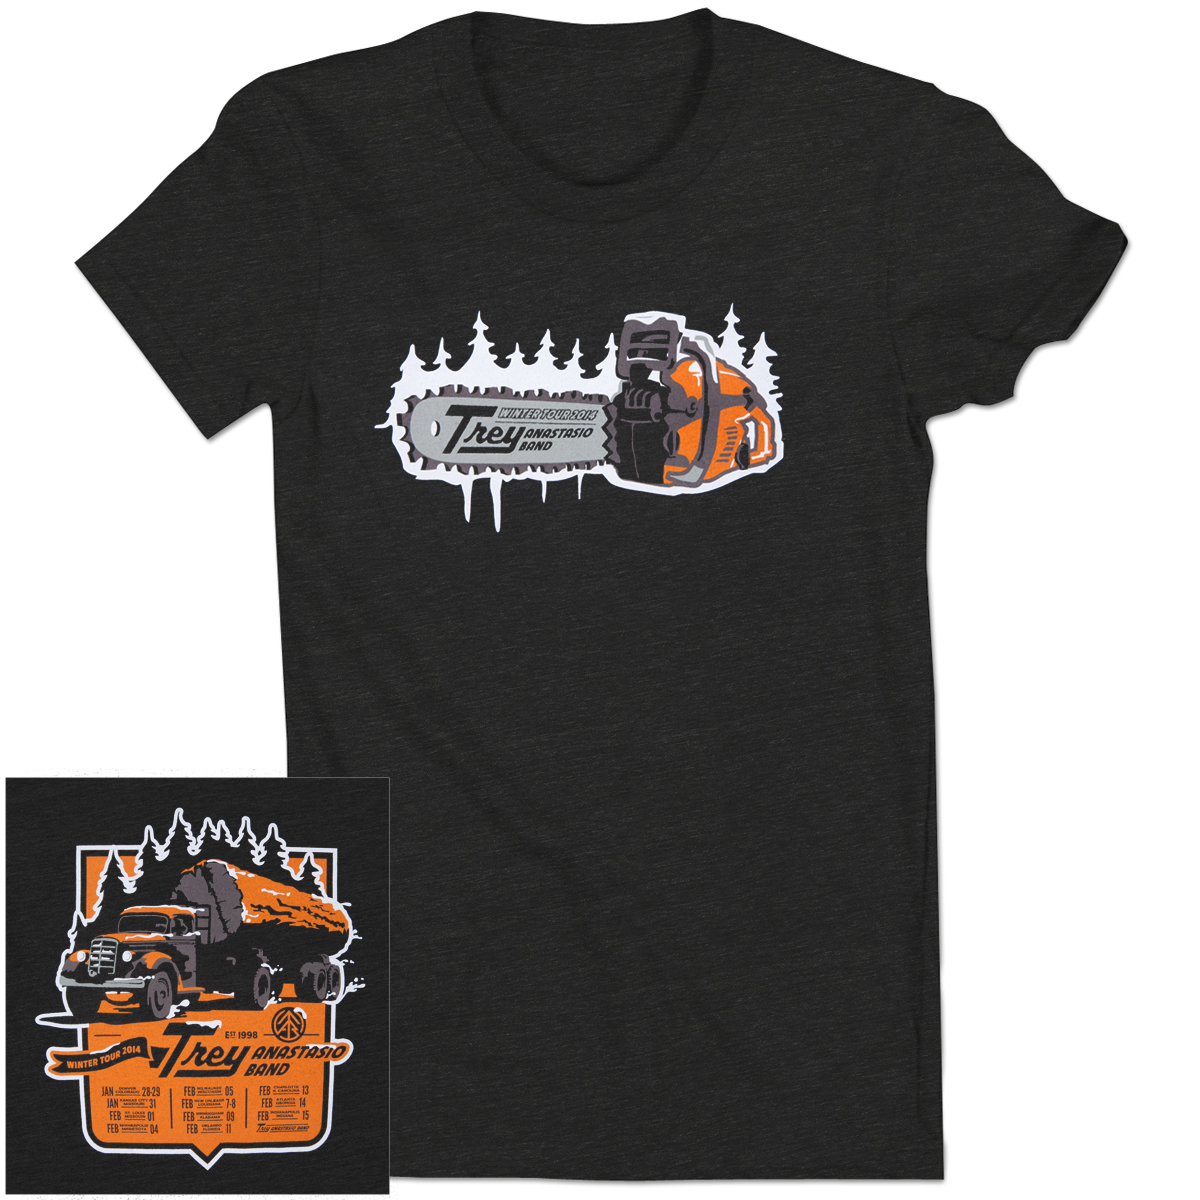 Ladies' Trey Anastasio Band Winter 2014 Chainsaw T